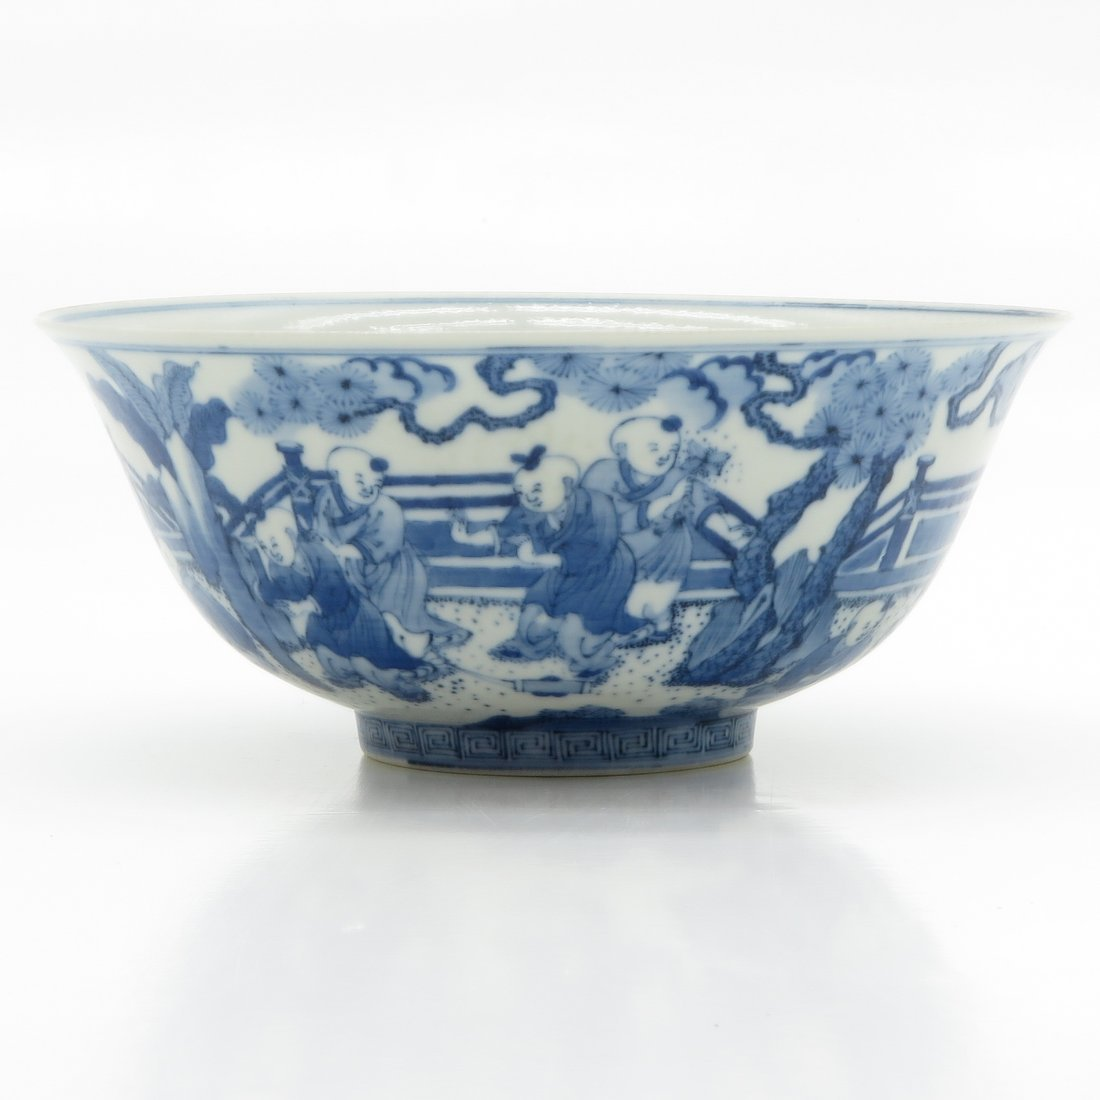 Tongzhi Period China Porcelain Bowl